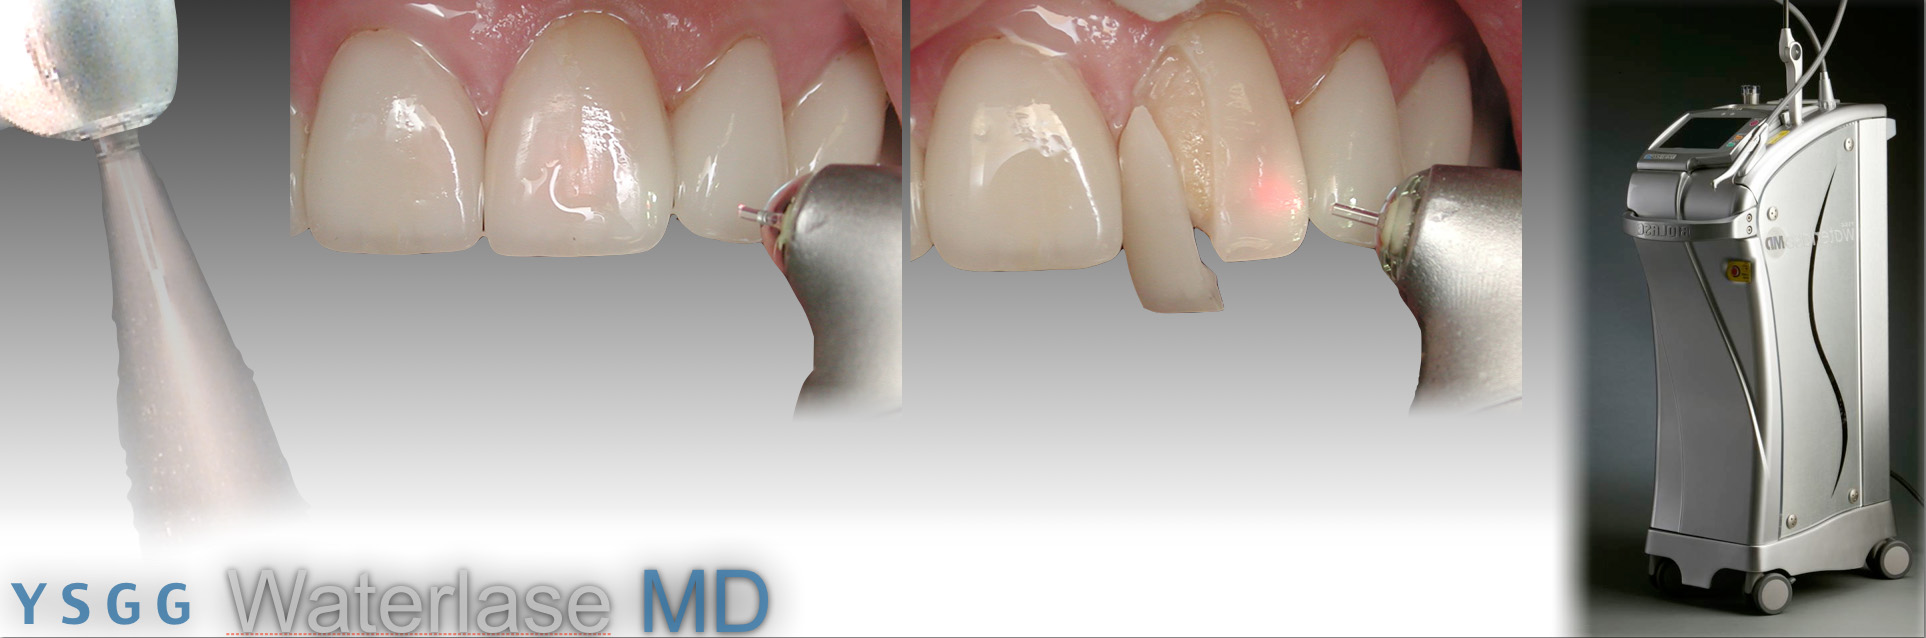 Removing Ceramic Veneers With a Laser: Part 1